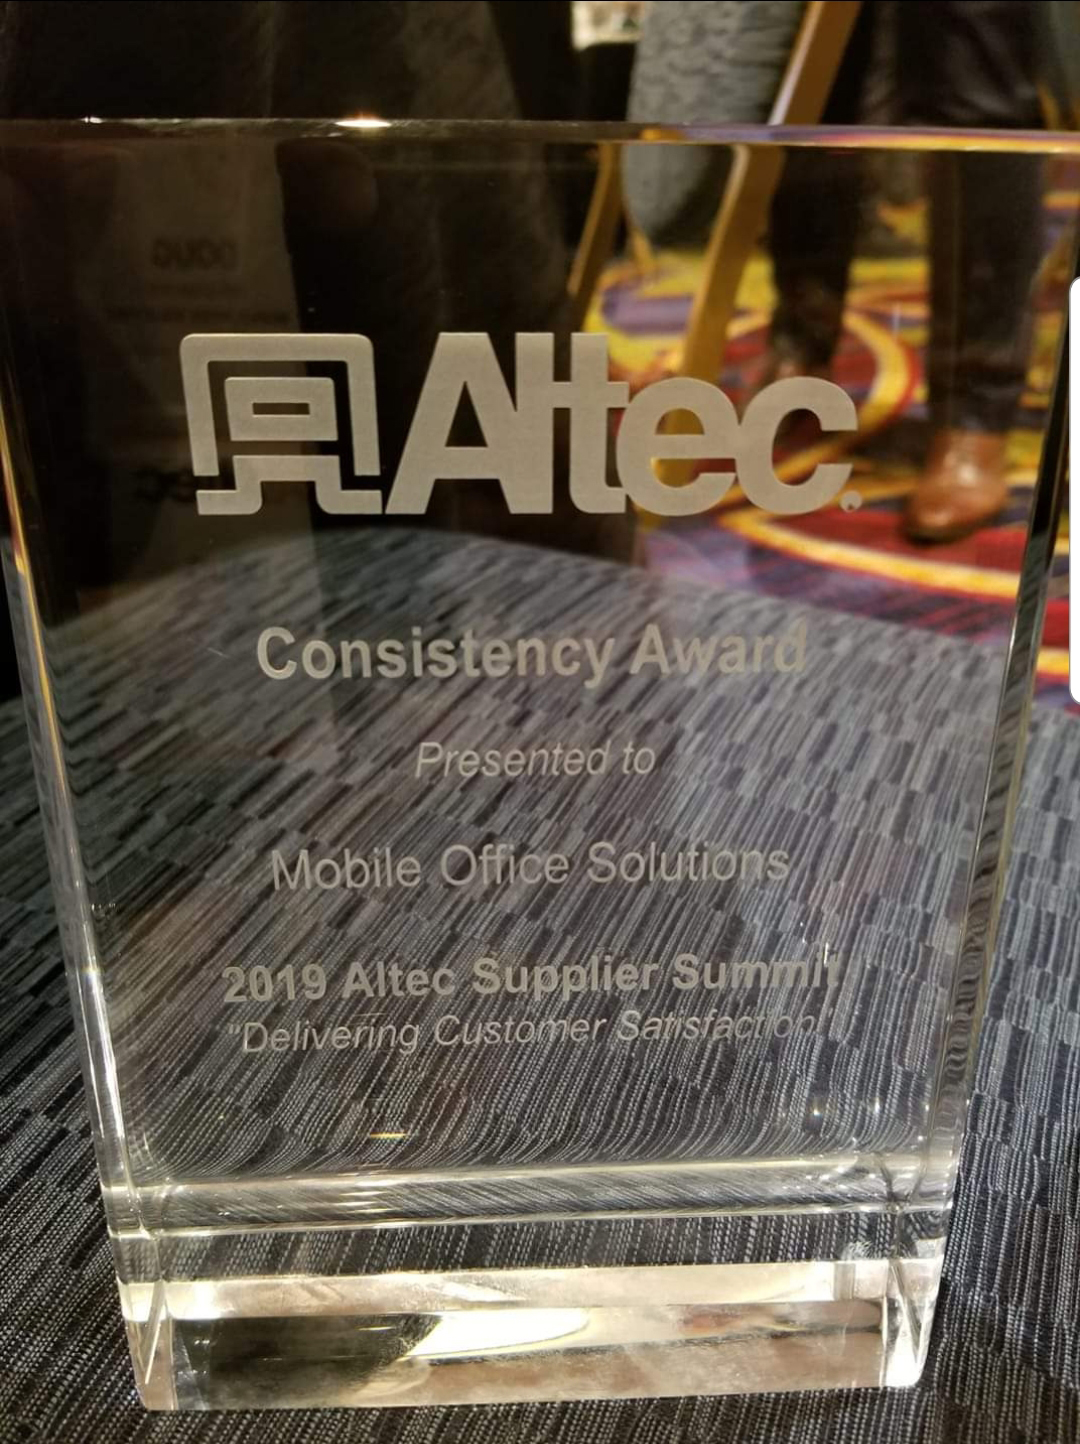 Mobile Desk Wins Altec Consistency Award